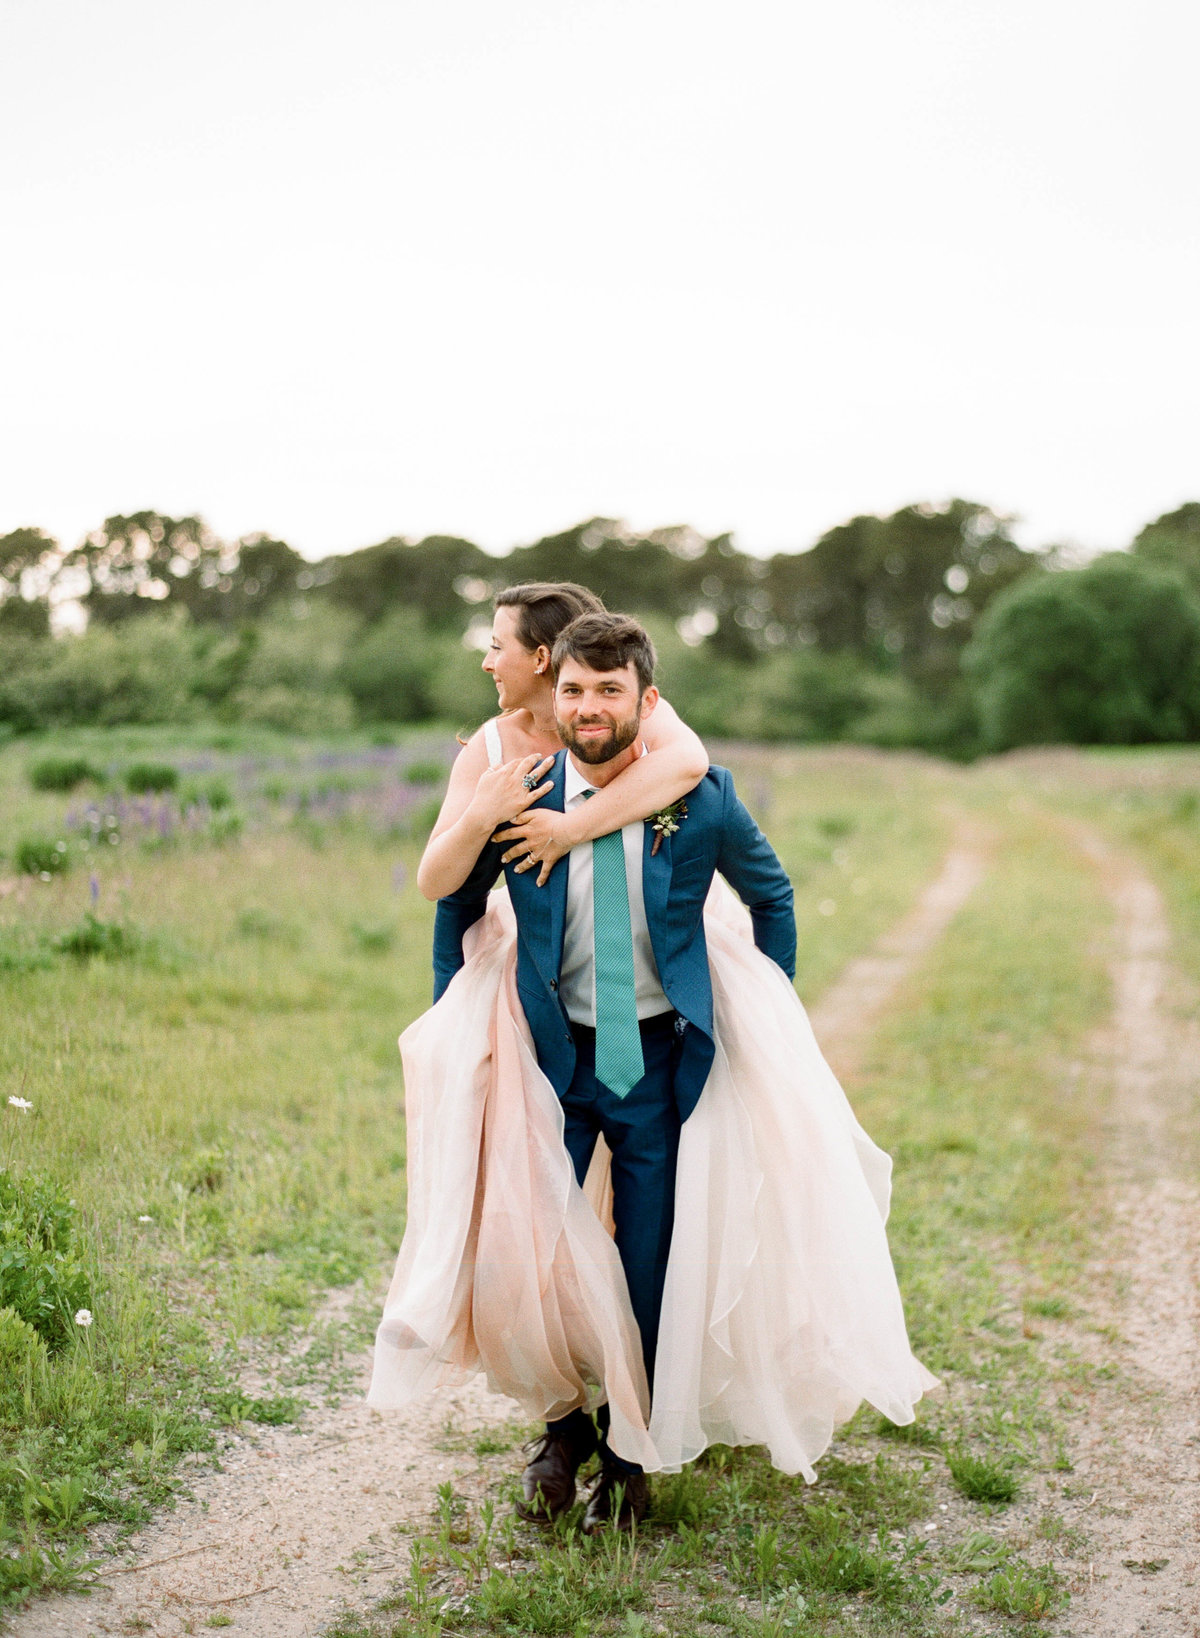 piggy back ride bride and groom adventure wedding nantucket